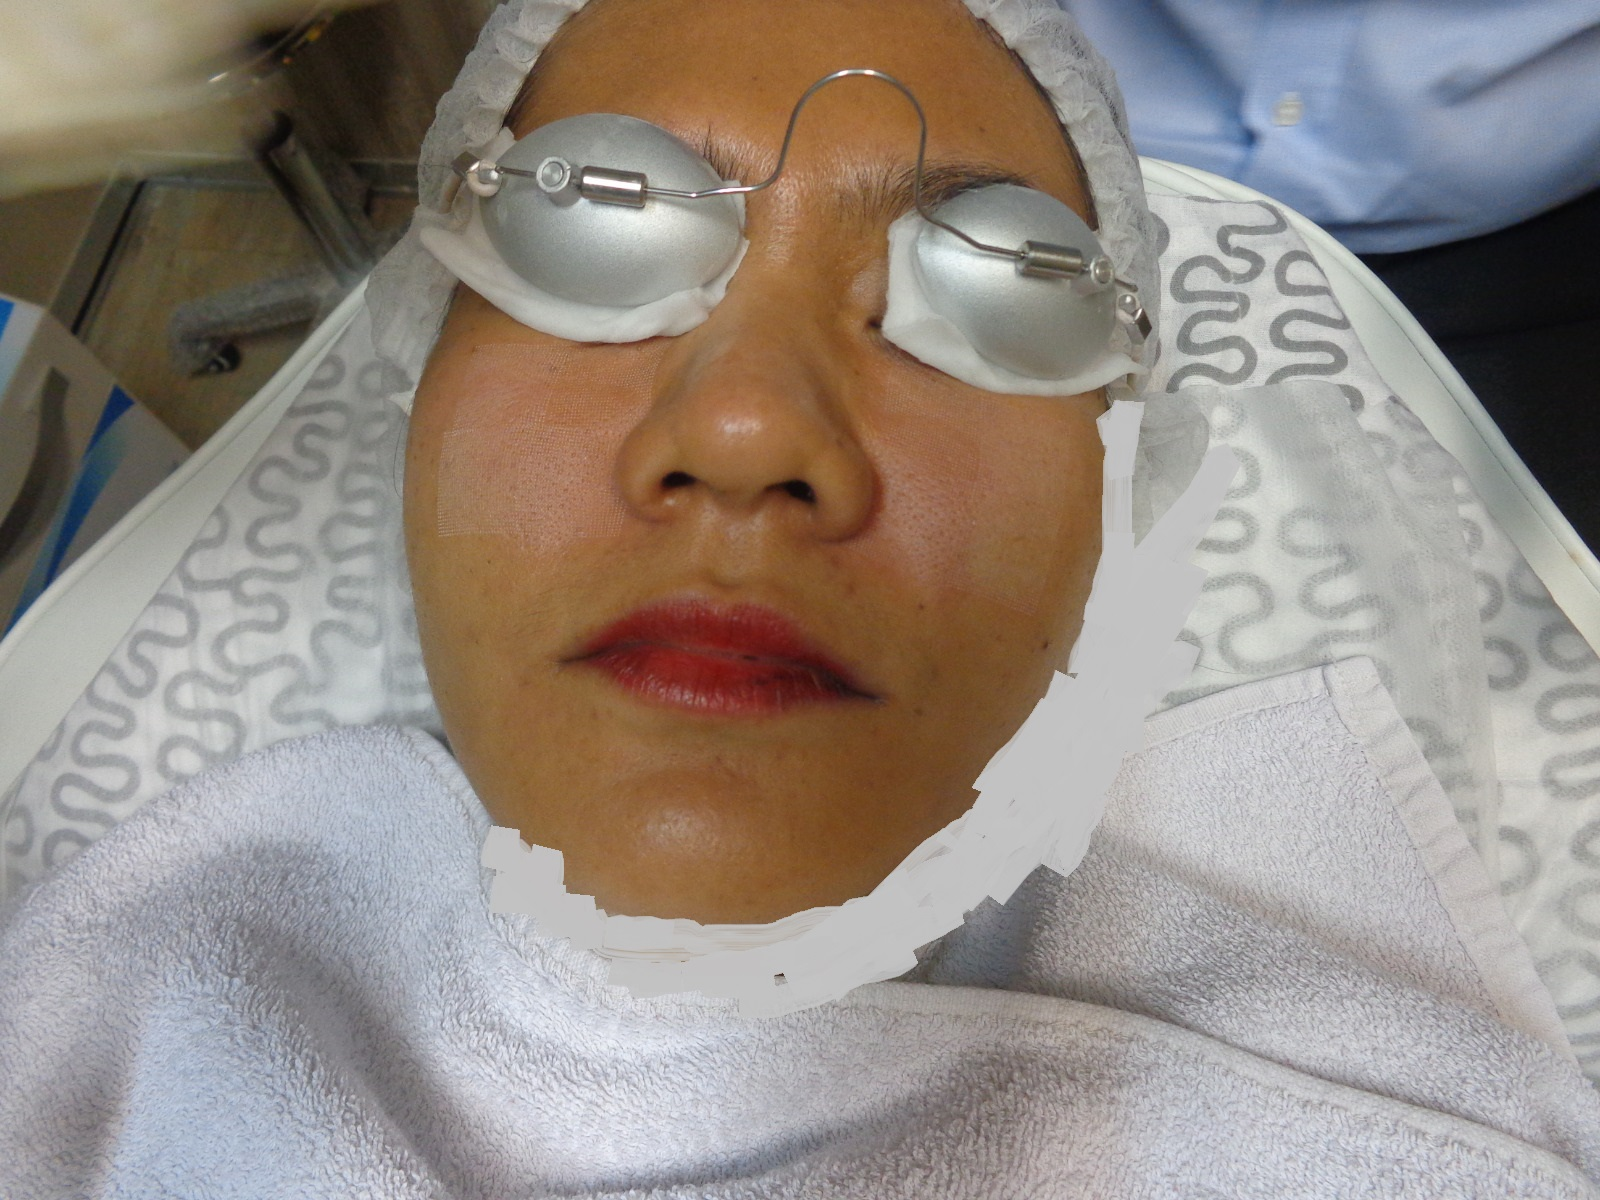 fractional laser process, fractional laser, premier clinic TTDI, fractional co2 laser, how to minimize ores in effective ways, how to minimize pores in fastest ways, minimizing pores, medlite c6 laser, Dr kee Yong Seng, aesthetic doctor, fractional laser process, LED Phototheraphy session,